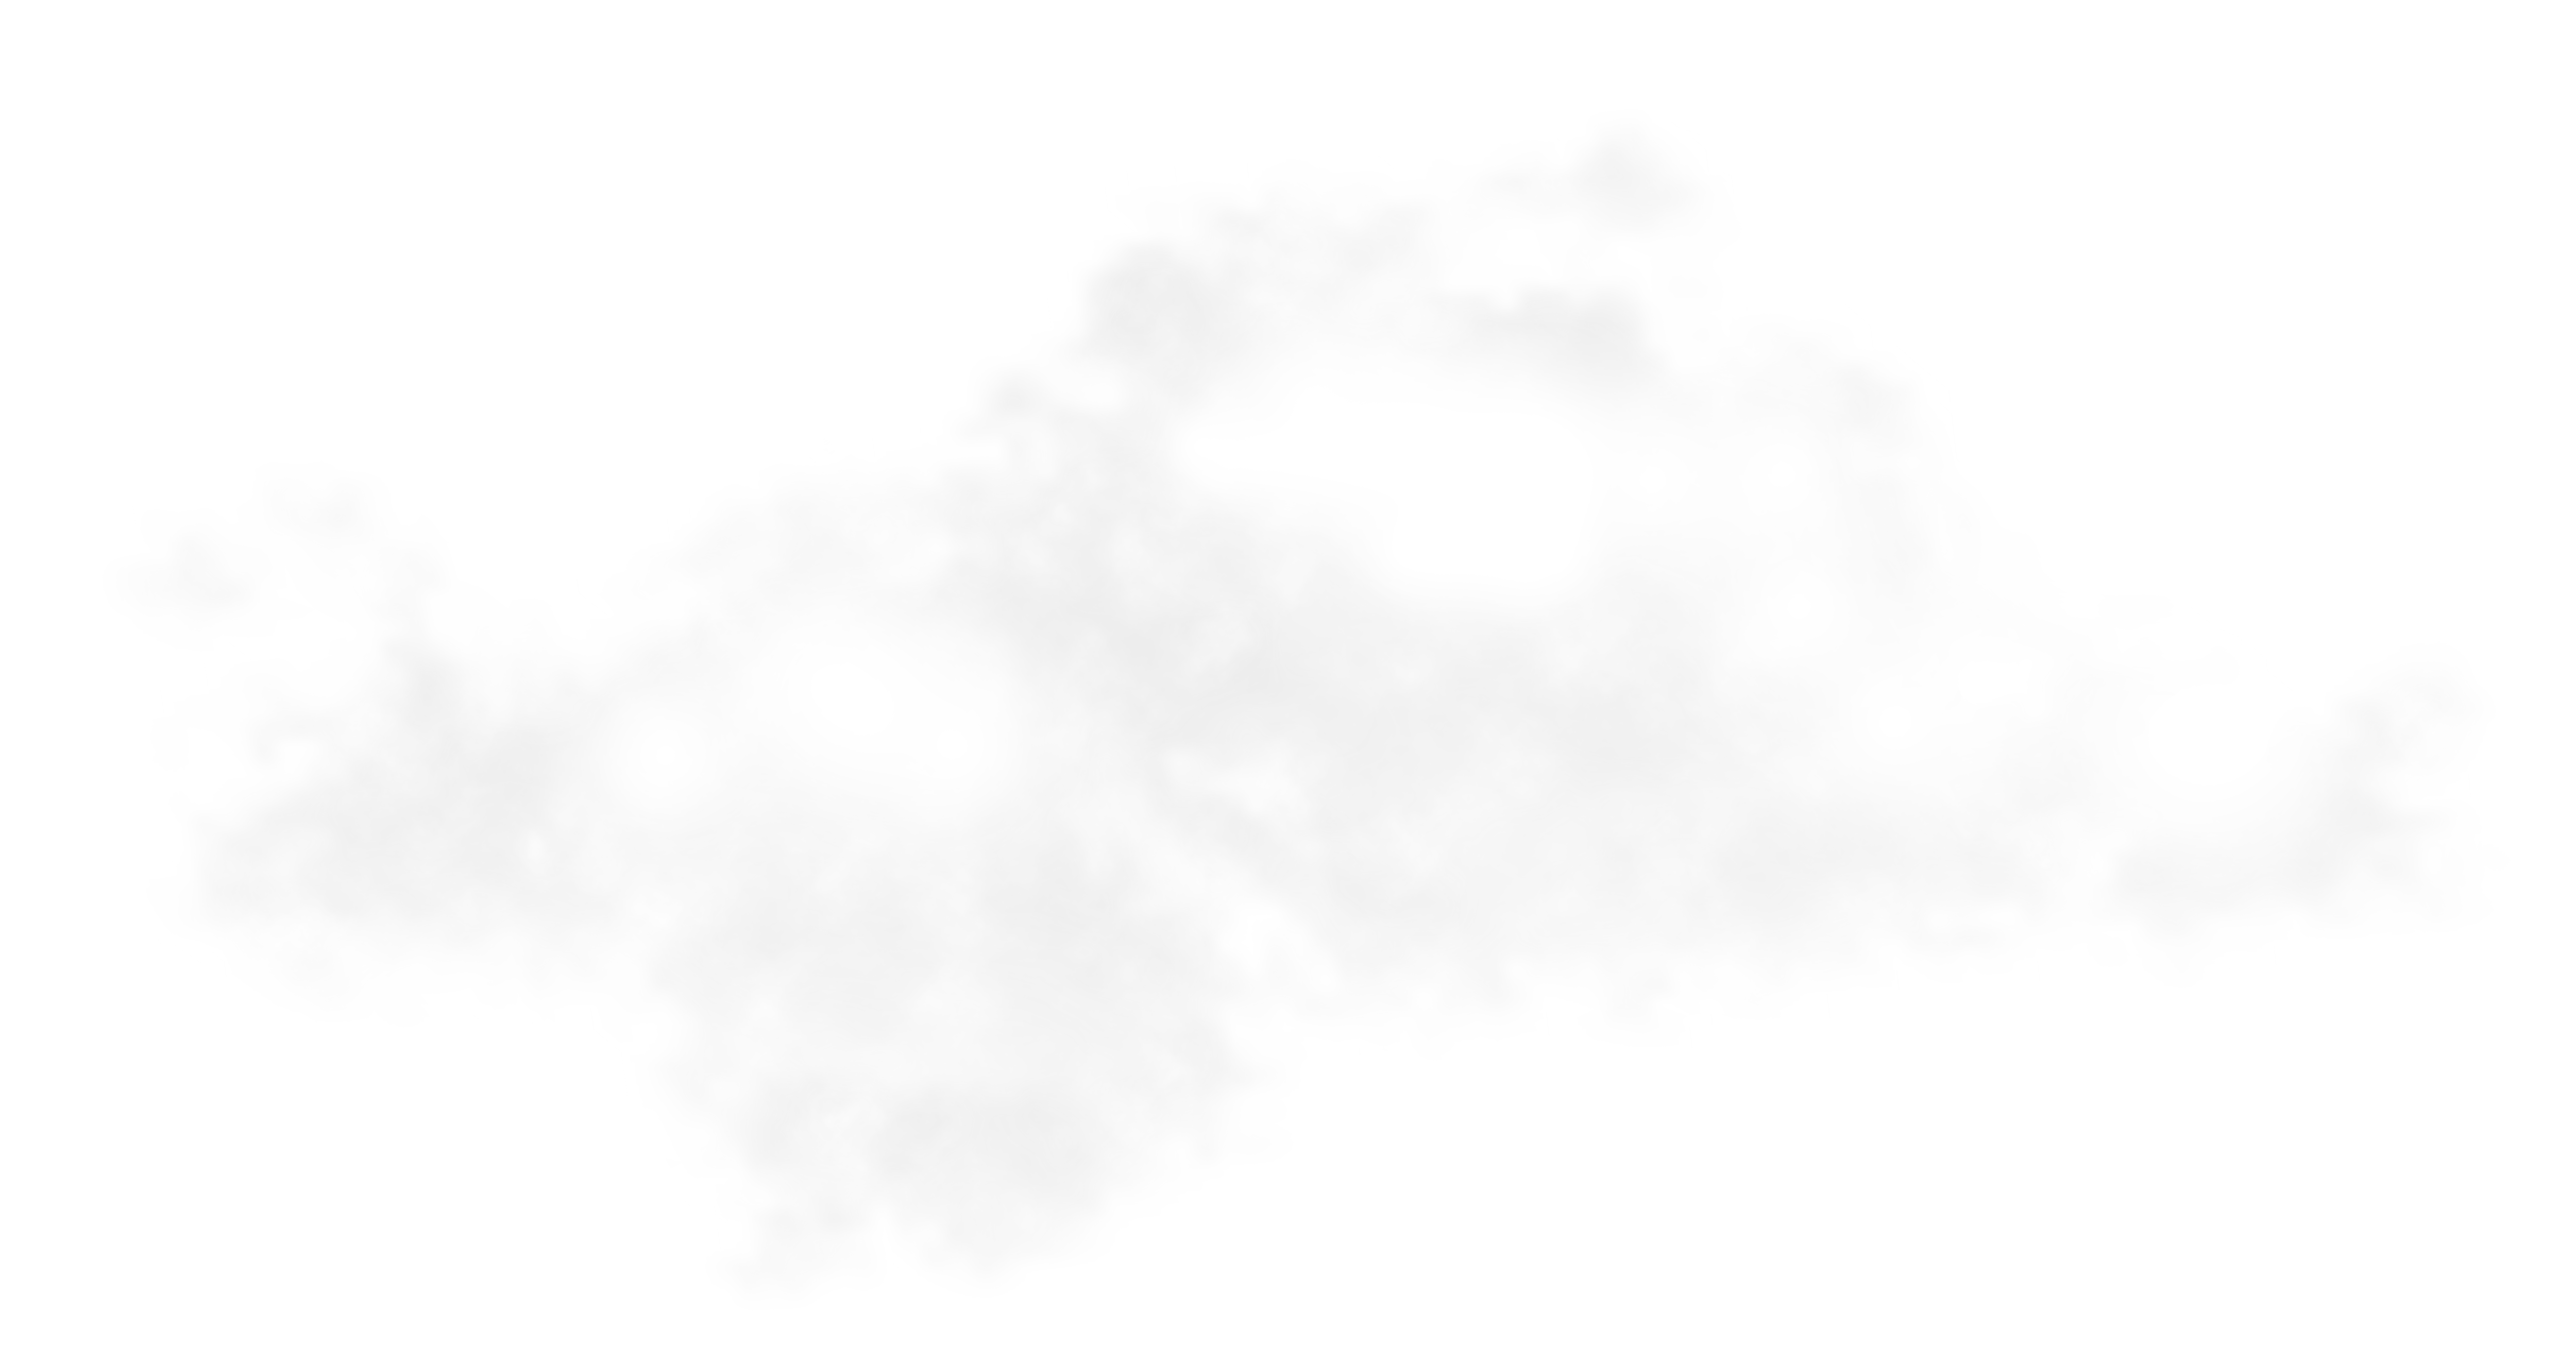 Clouds clipart png. White small cloud best